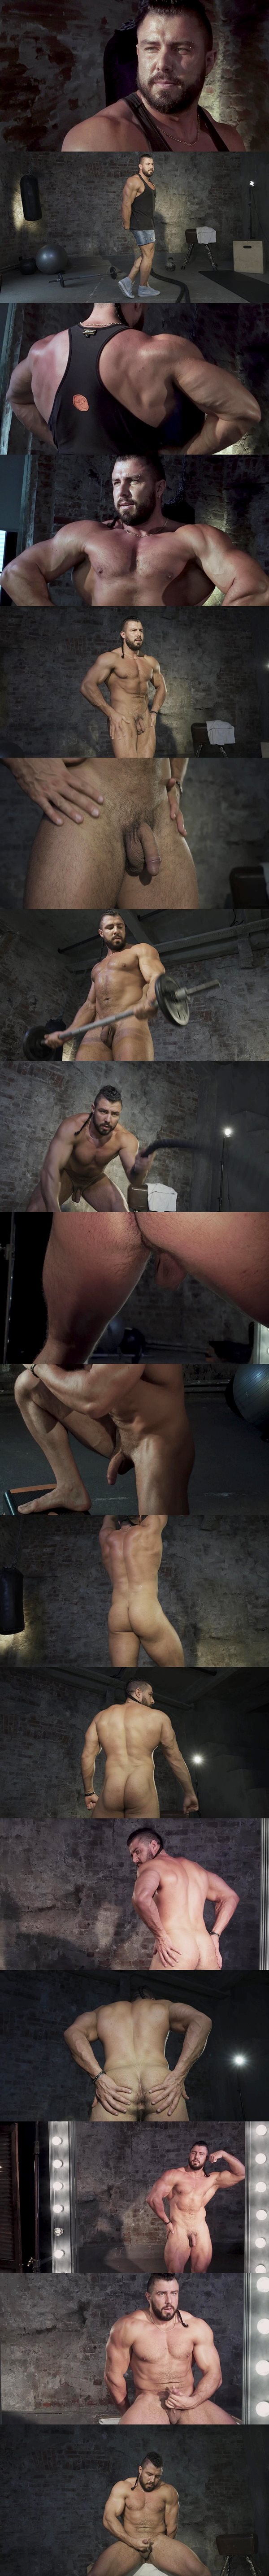 Macho Russian bodybuilder Ruslan poses his muscular body and works out naked before he jerks off in Naked Russian Bodybuilder Number 5 at Theguysite